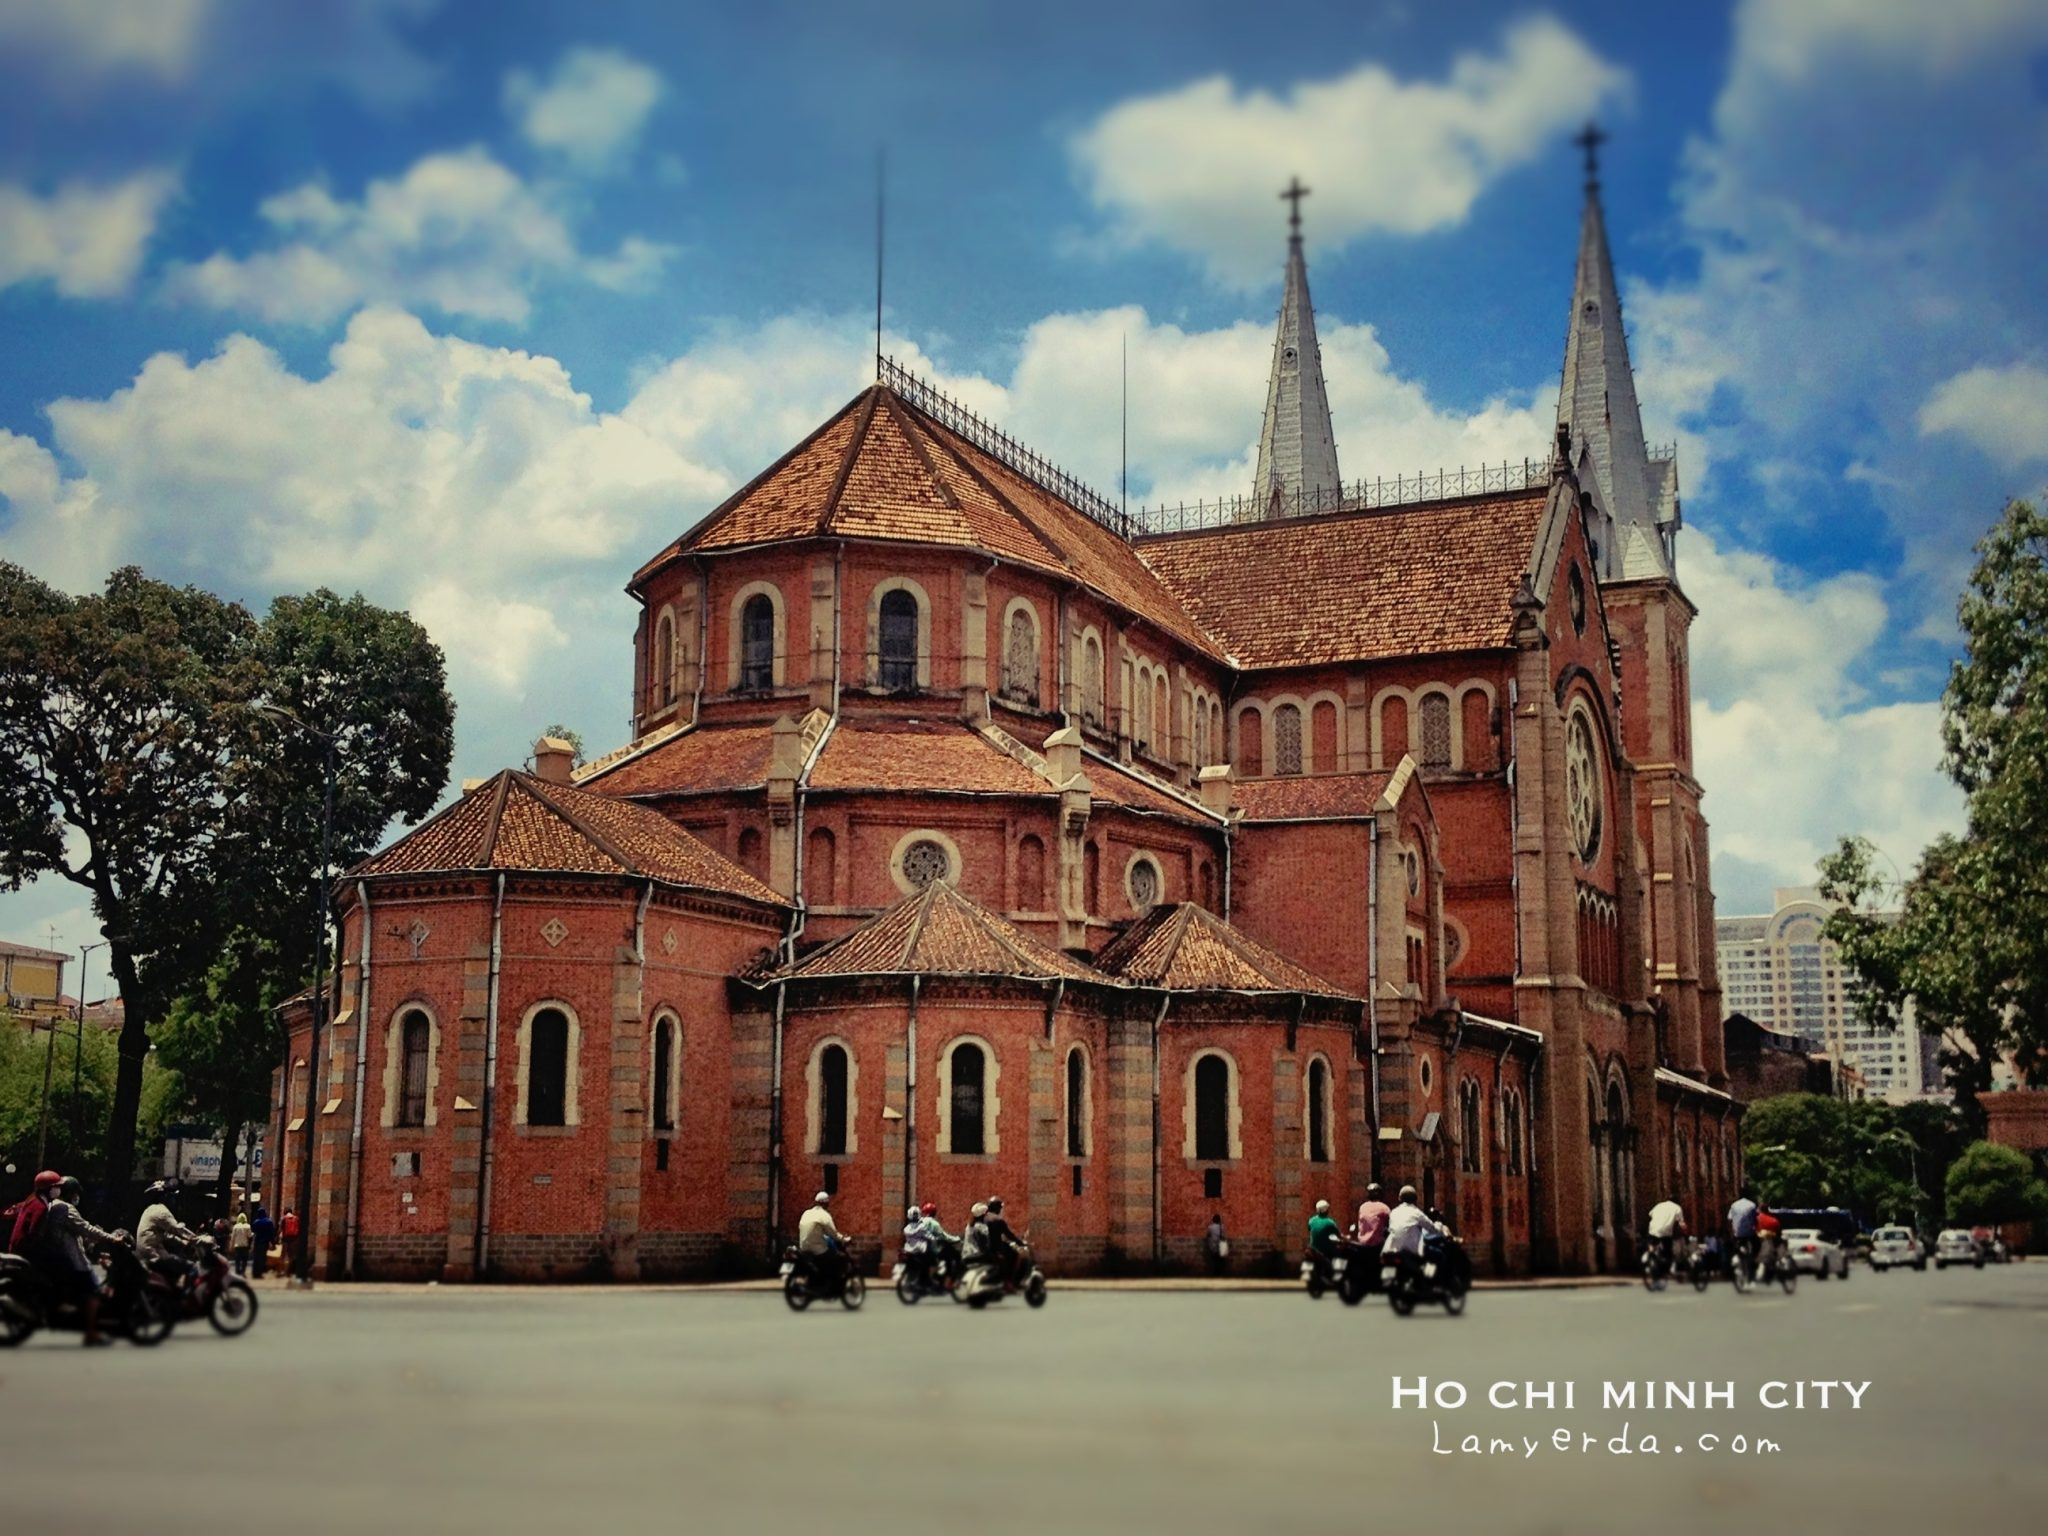 Ho Chi Minh City: The Walking Tour - Lamyerda